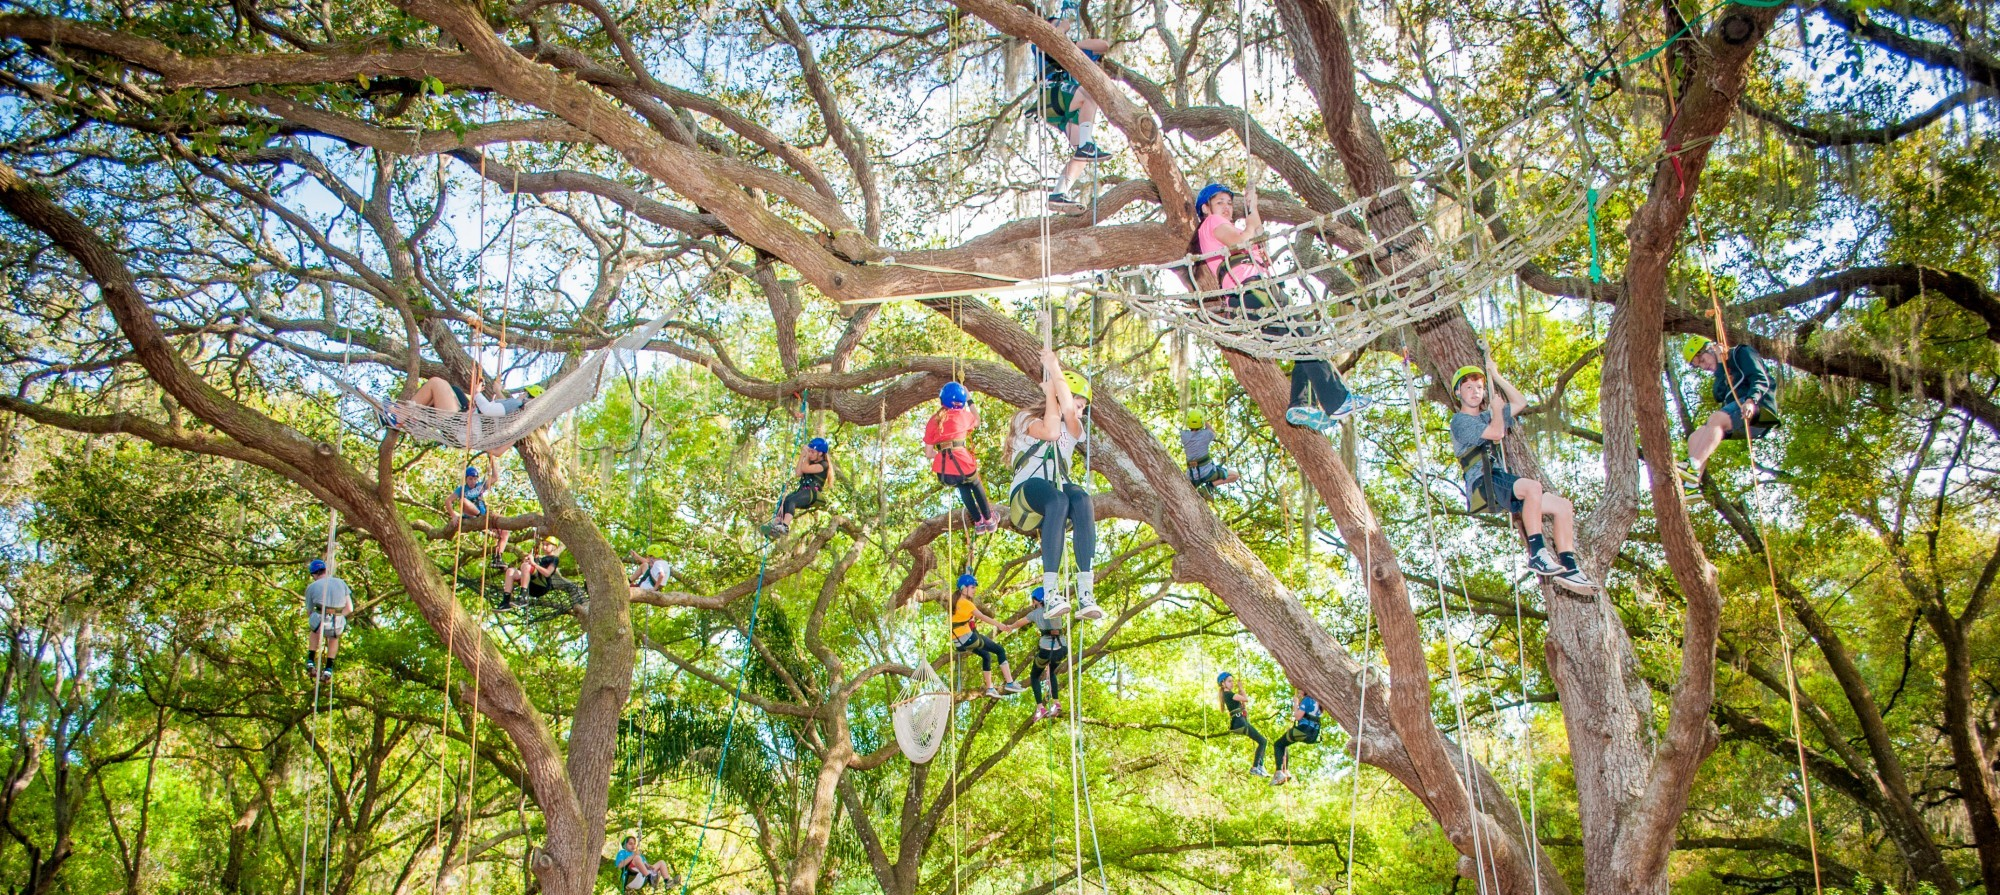 A group on an outdoor adventure during a technical tree climbing program